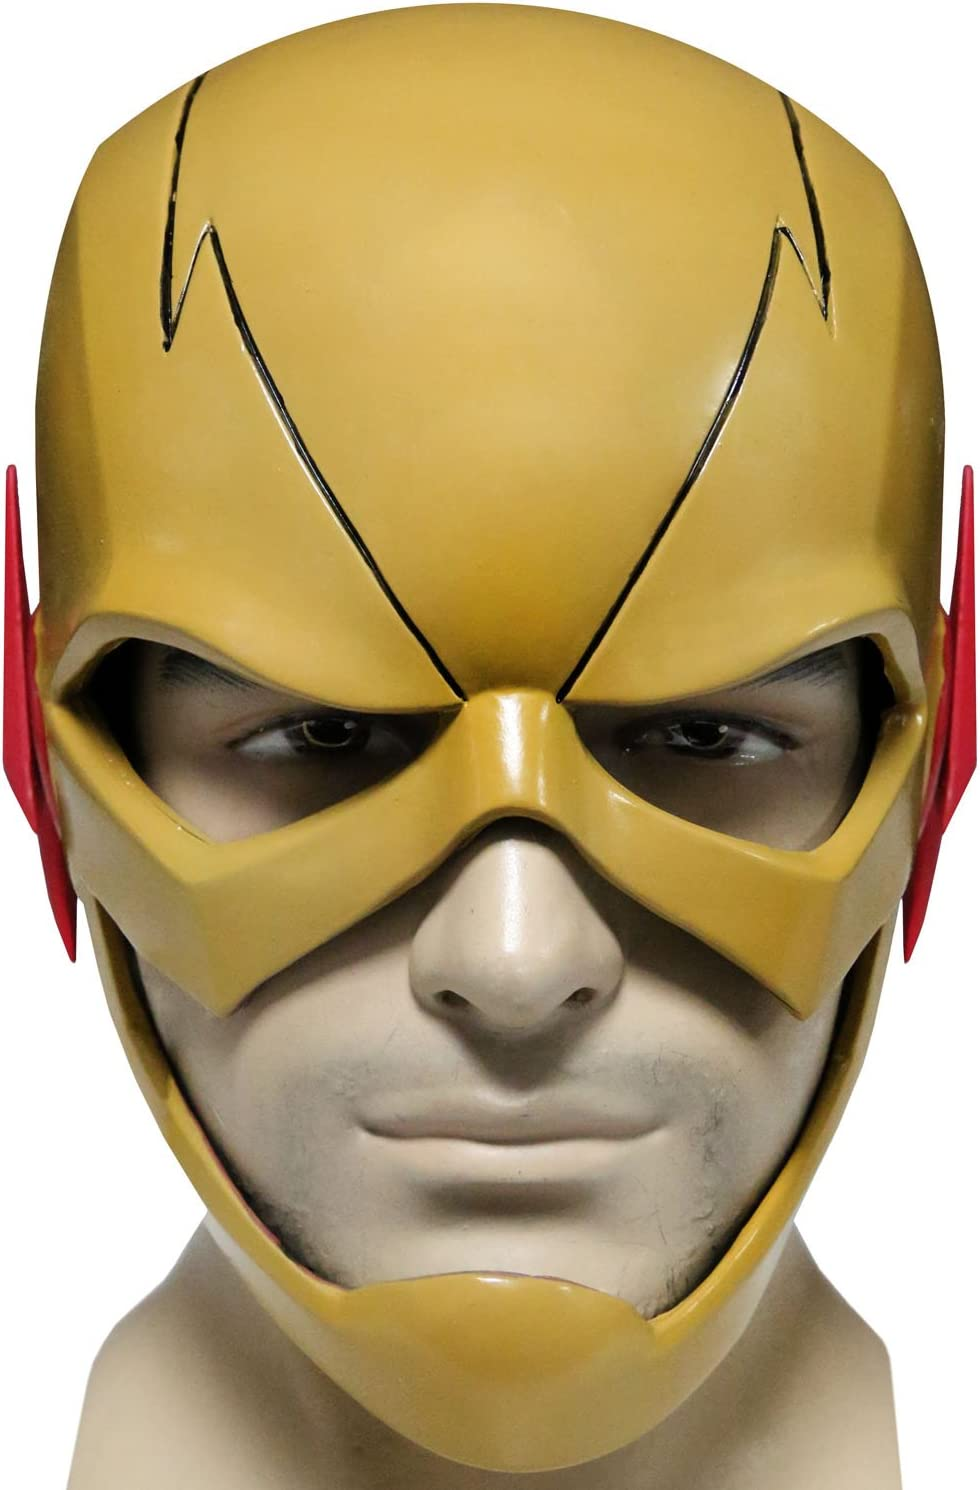 The Flash Helmet Reverse Flash Cosplay Mask Costume Accessories Comic Apparel Props Full Head Hat Toys Gift Yellow